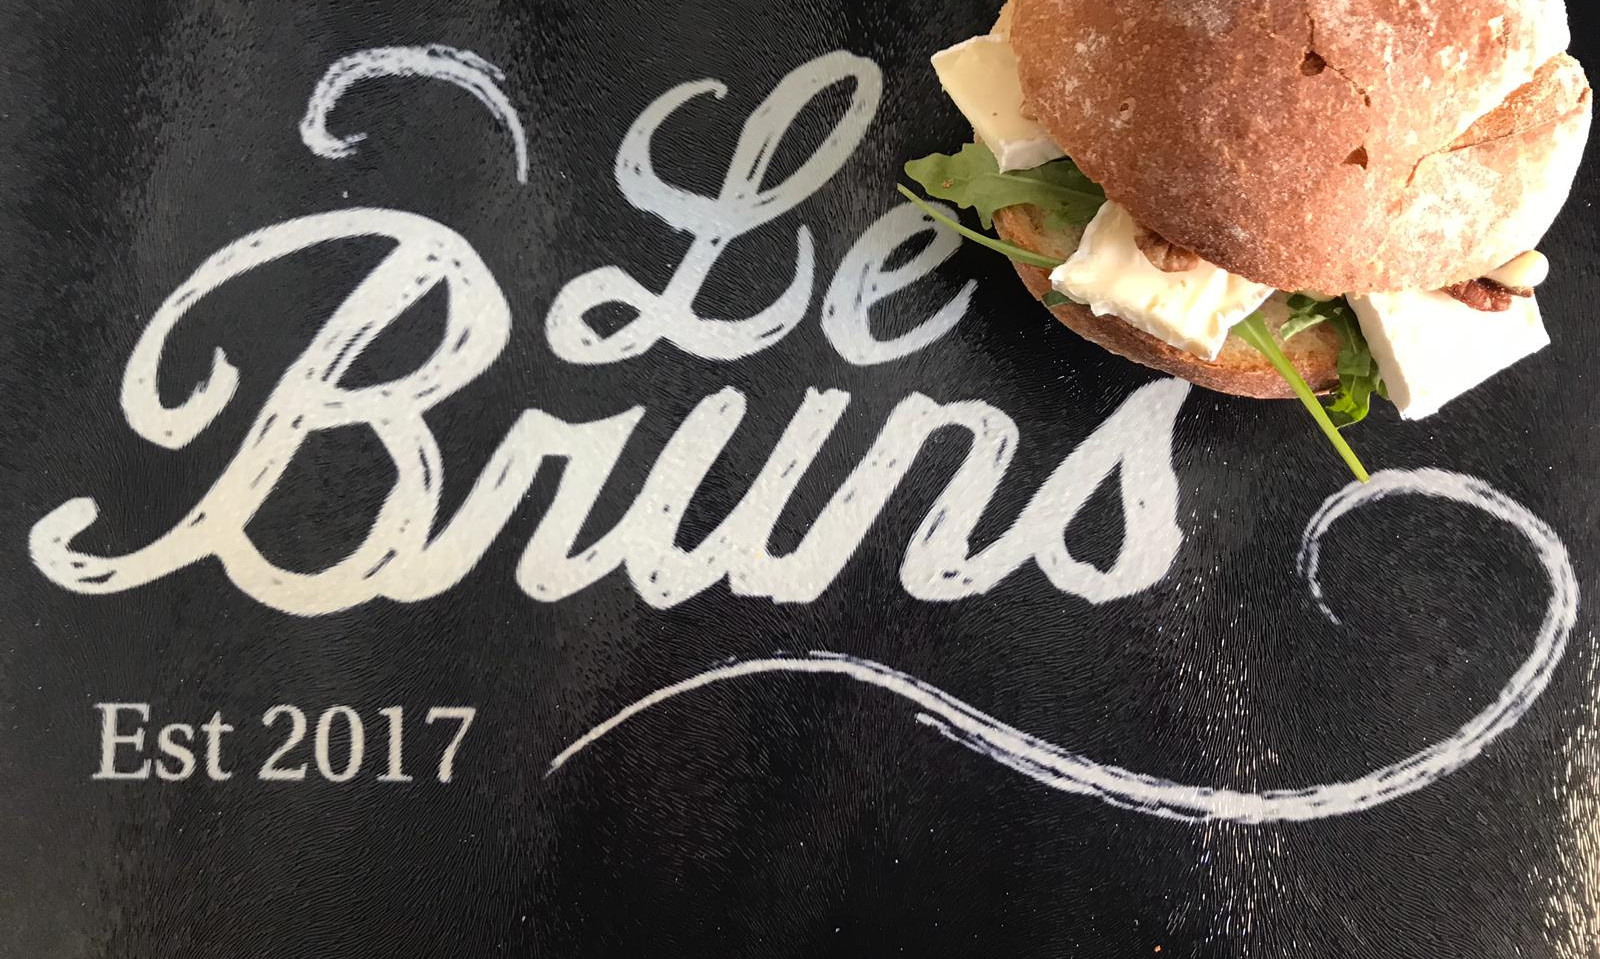 Foodtruck Le-Bruns Brie